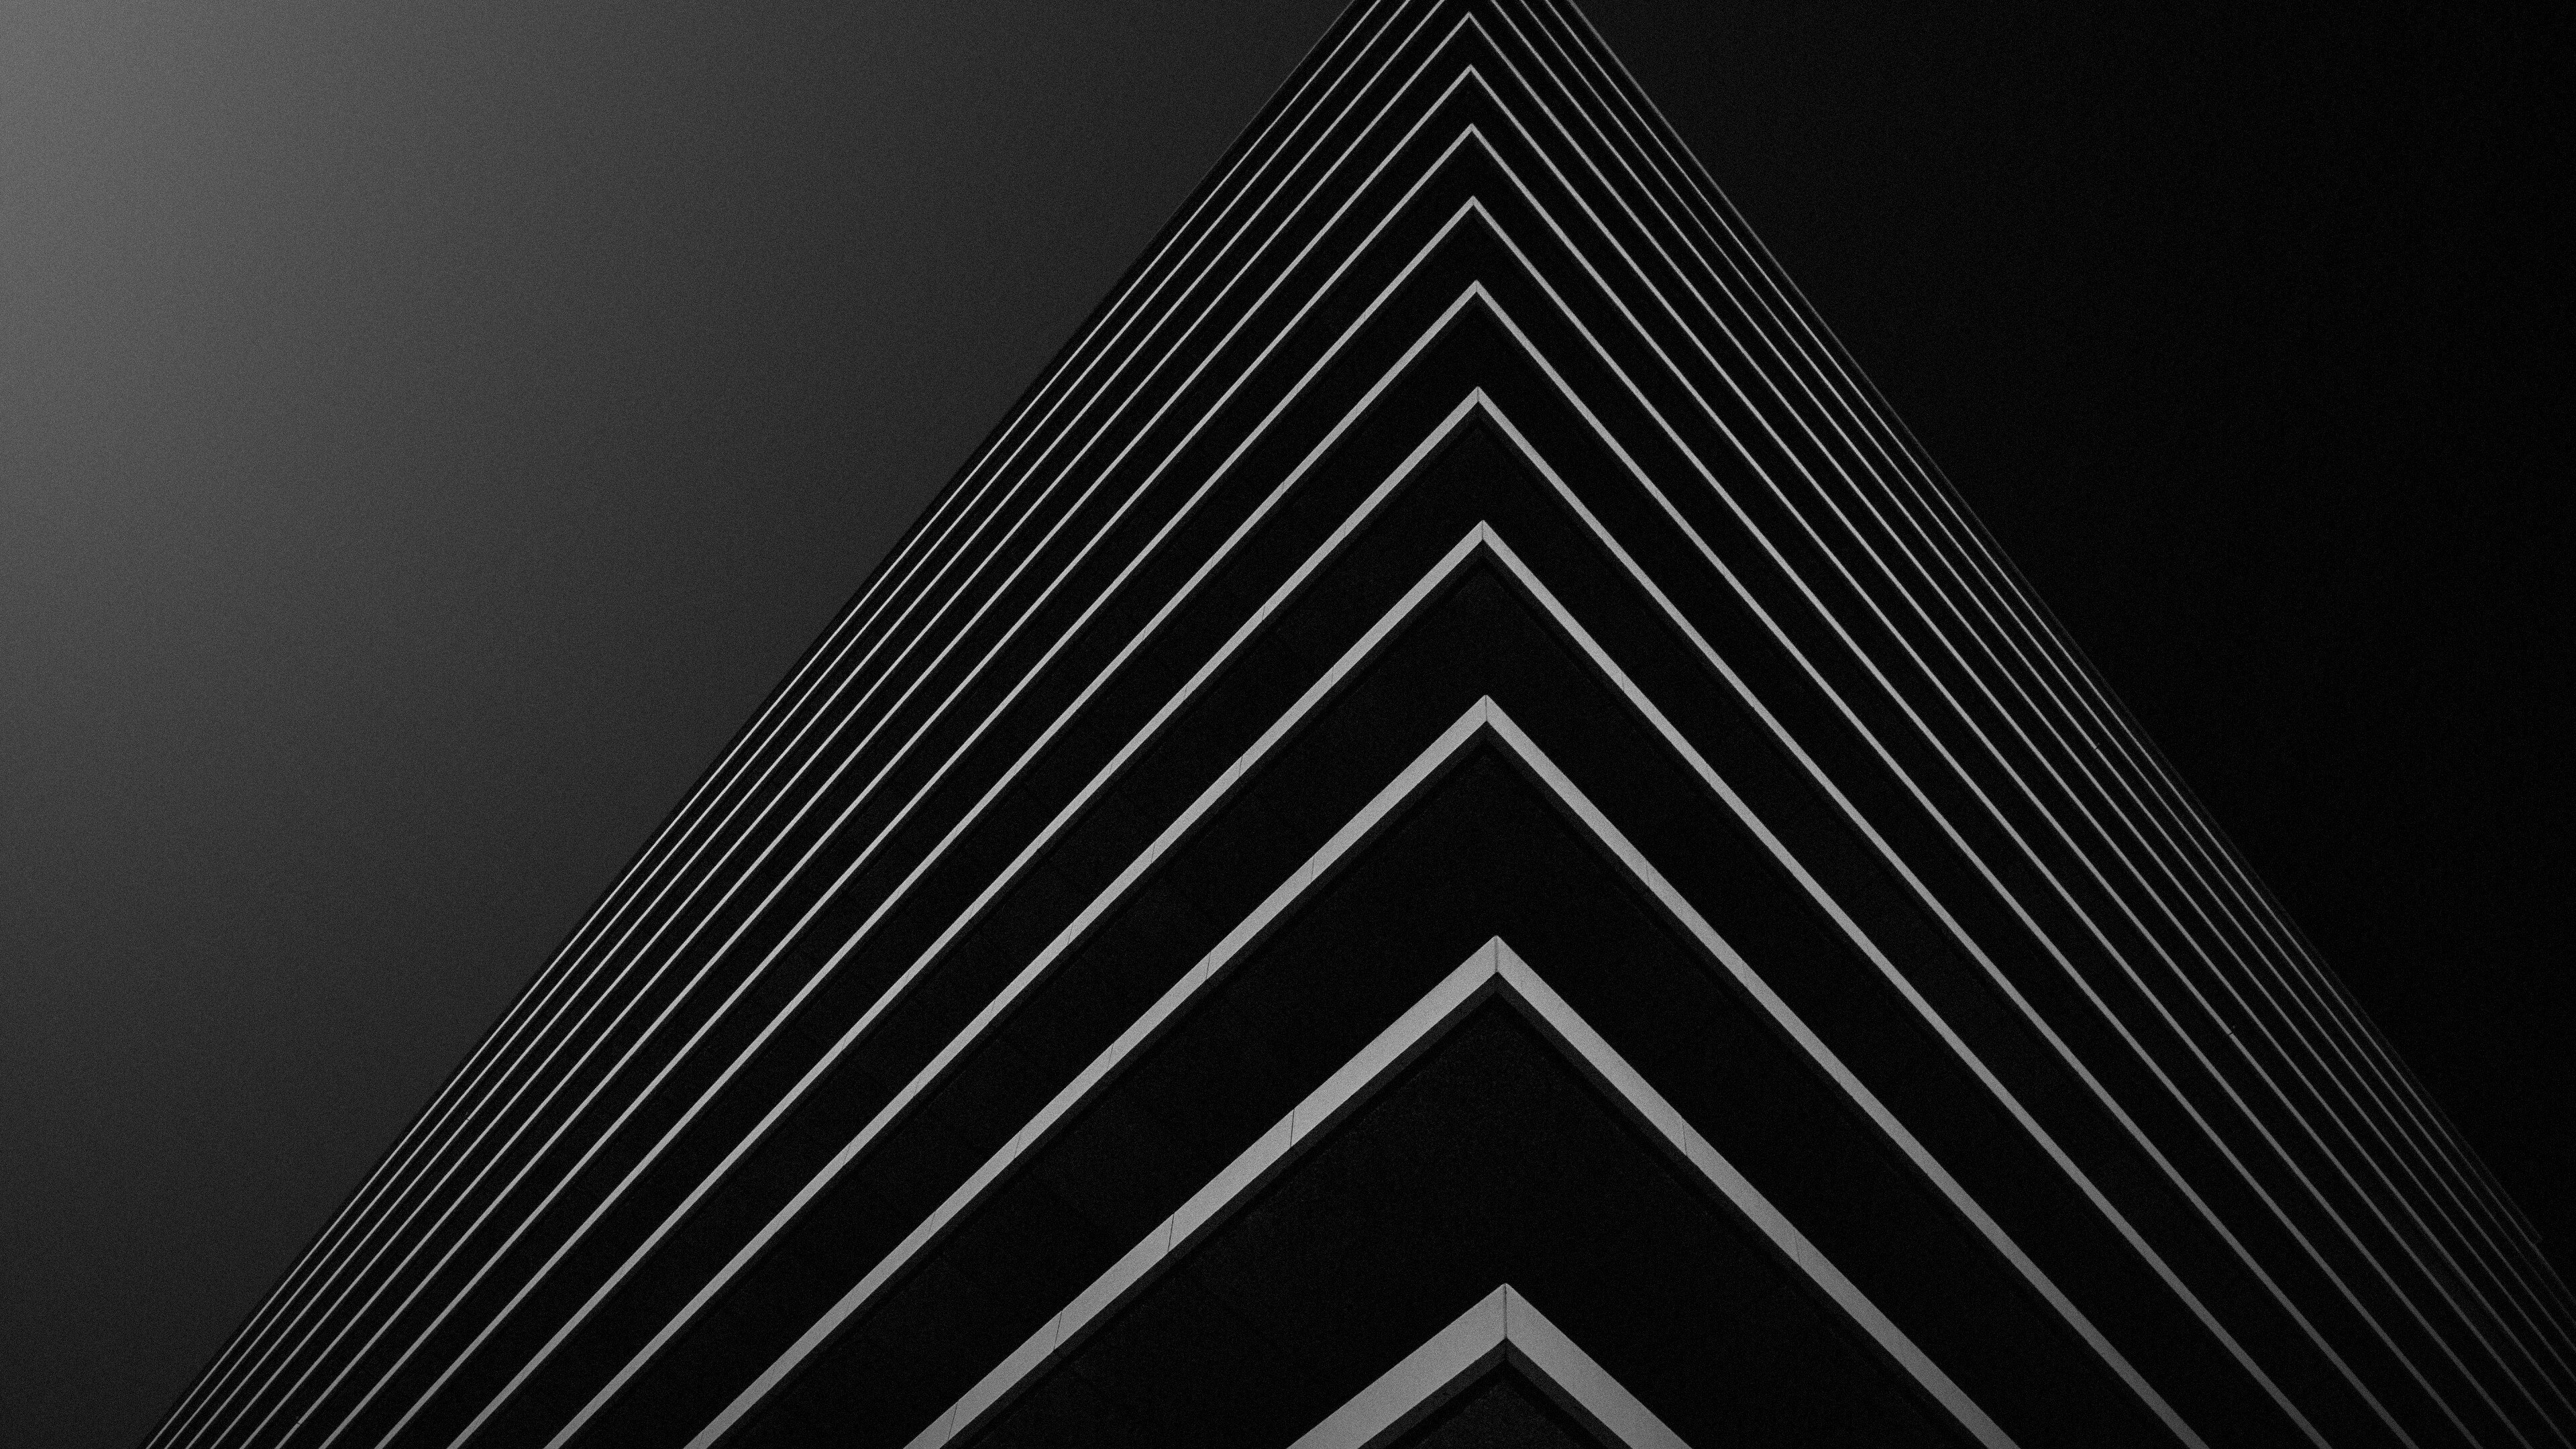 building corner in black background 4k wallpaper hd wallpapers